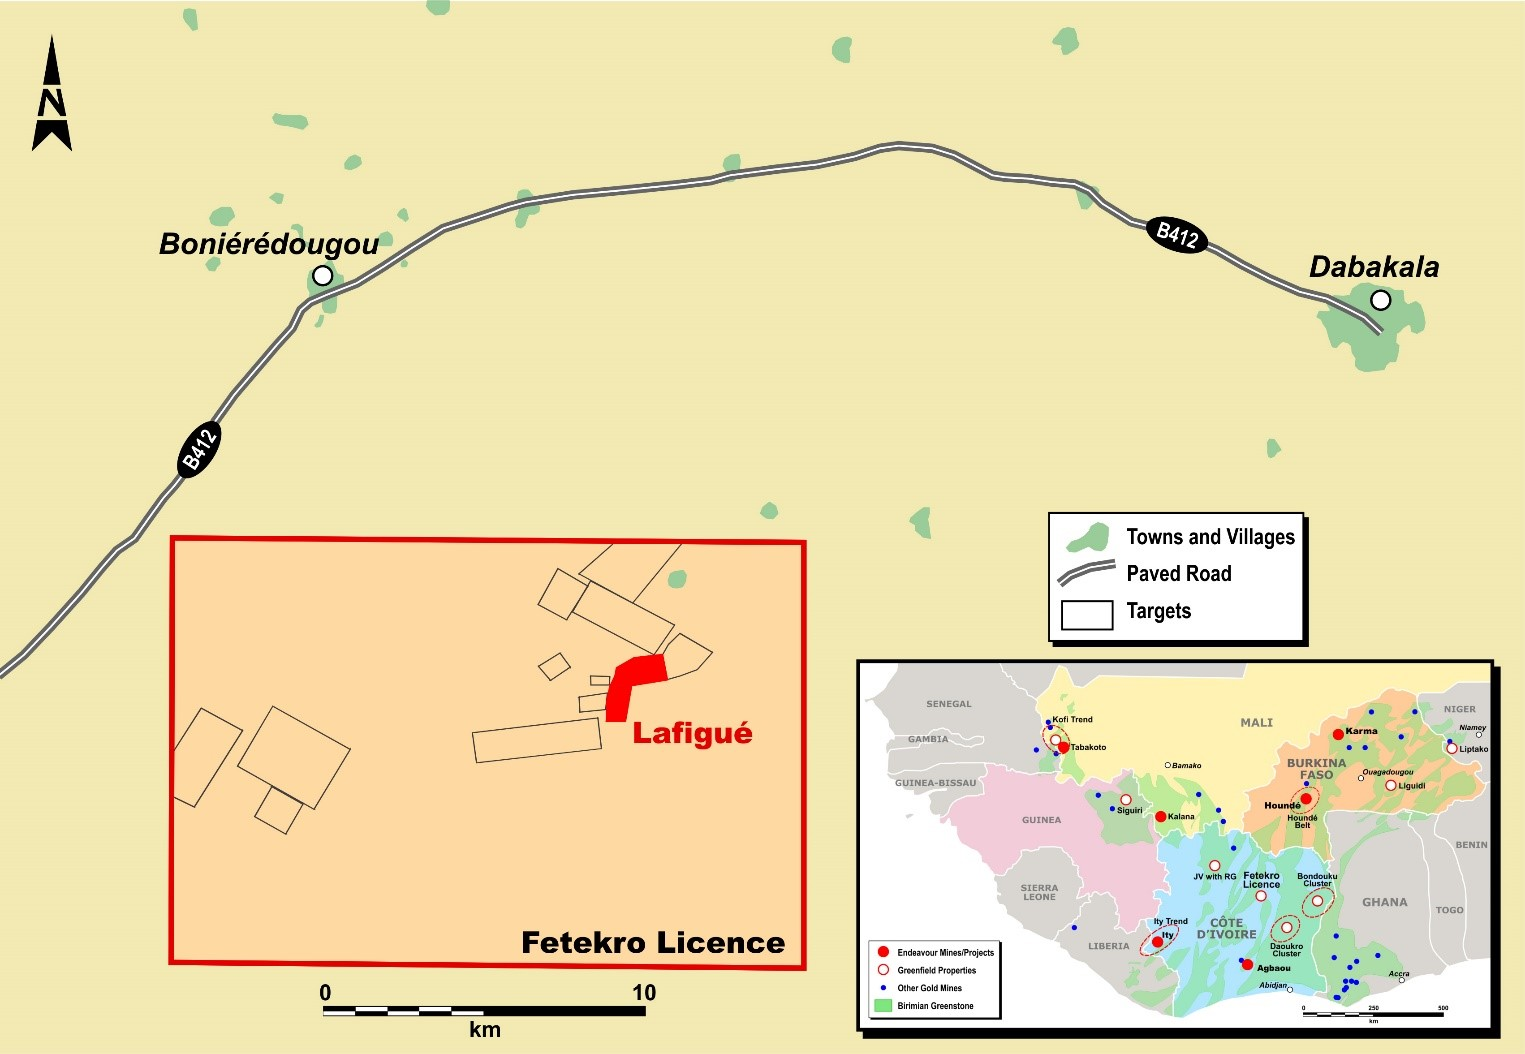 Endeavour Mining Corporation Announces Maiden Resource Process Flow Diagram Gold Figure 5 Fetekro In Soil Map And Selected Intercepts